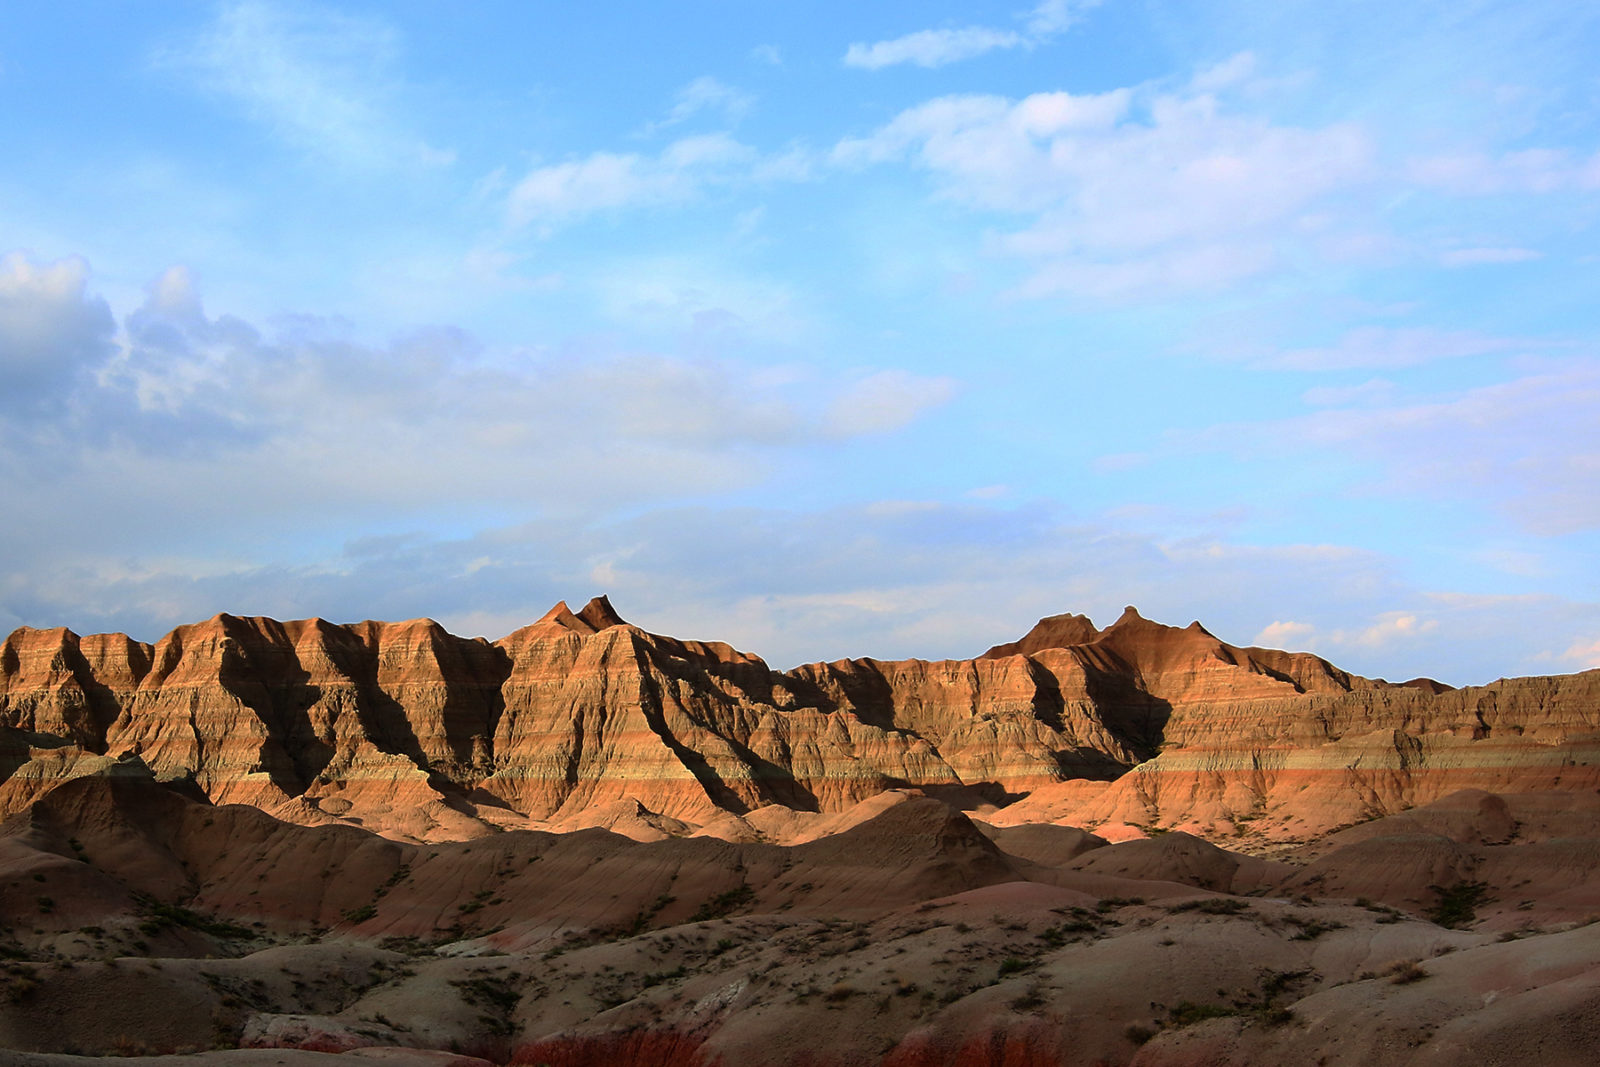 Badlands 5 O'Clock Shadow